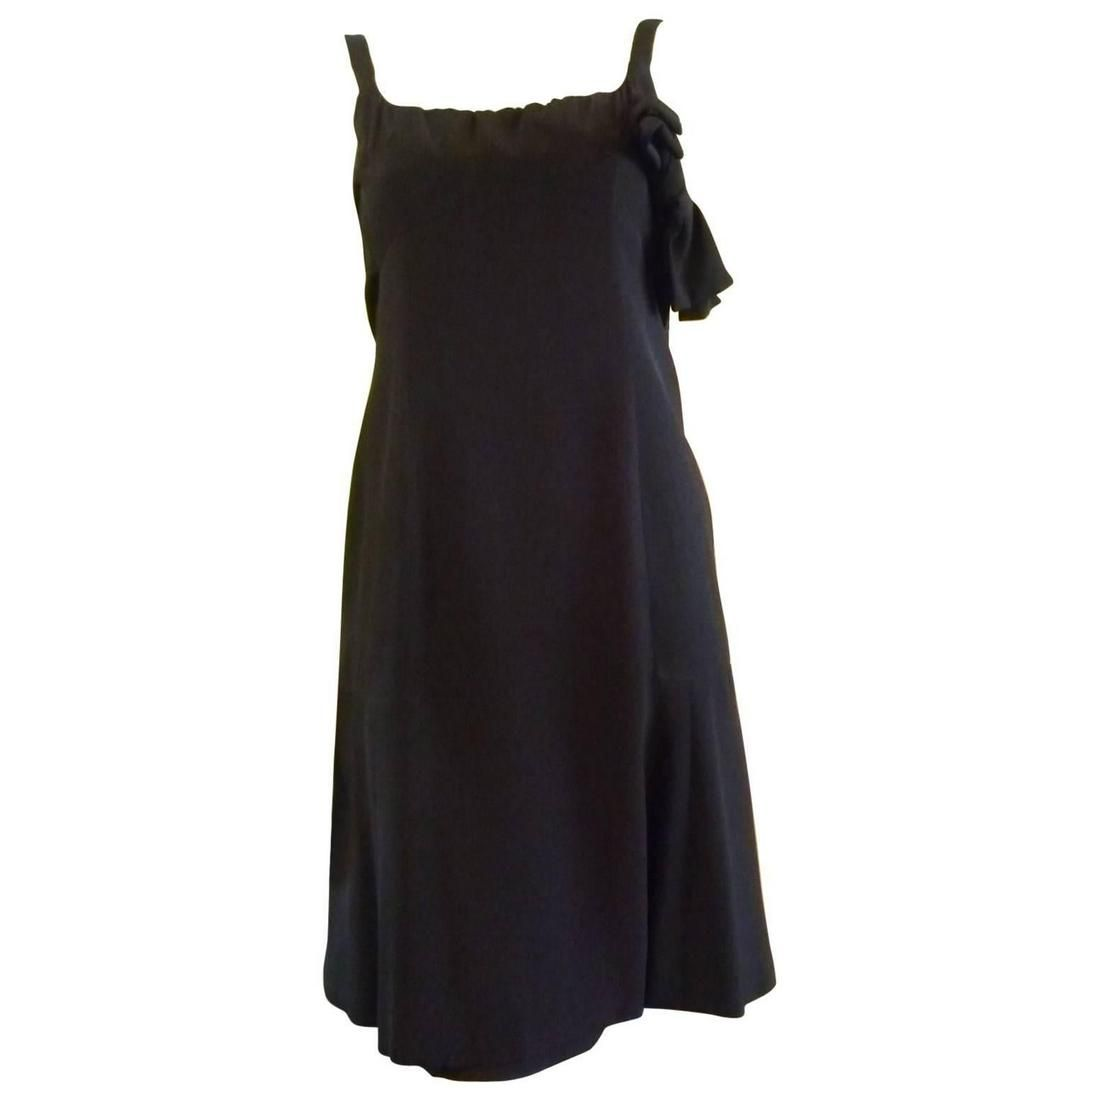 Very Special 1950s Jacques Heim Attributed Black